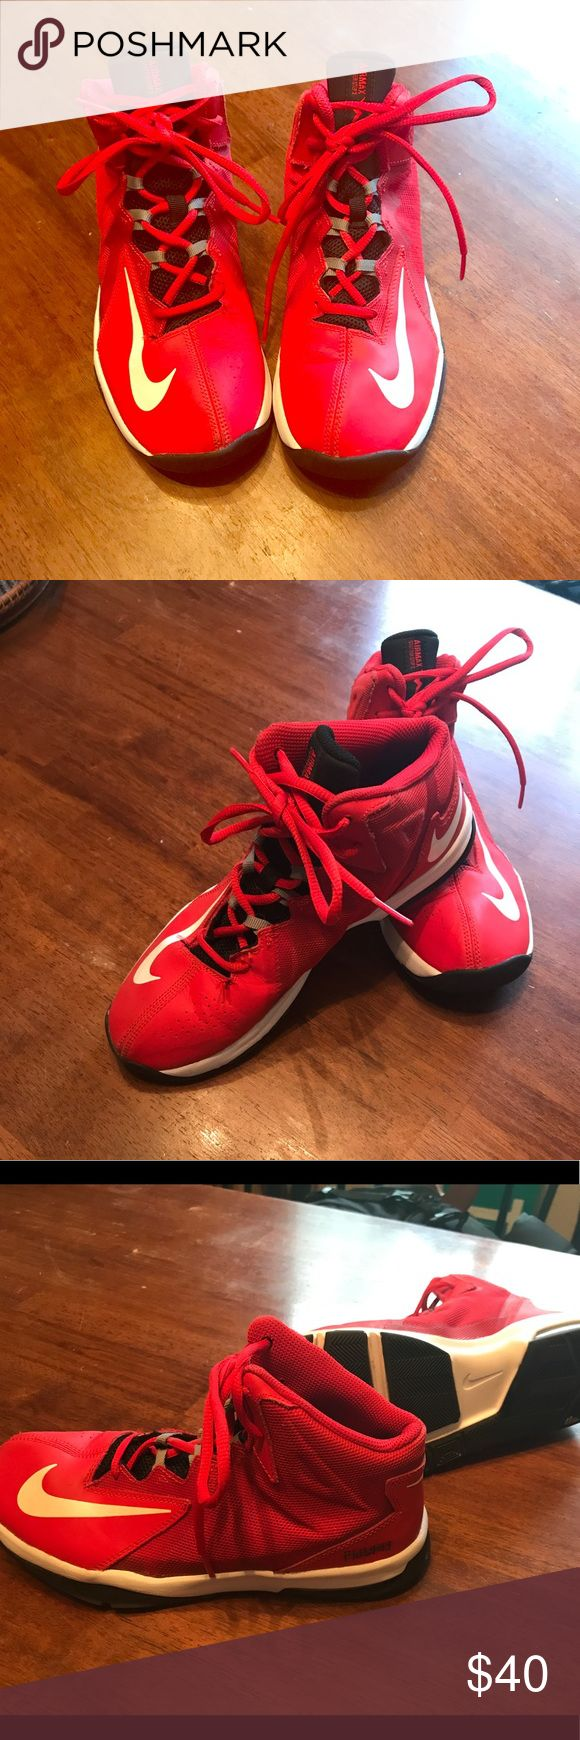 Boys Nike Air Max Stutter Step 2 Basketball shoe Boys Size 6.5Y, Nike Air Max Stutter Step 2 basketball Shoe; Red; great shape and condition. Worn only a few games, indoors. Nike Shoes Sneakers